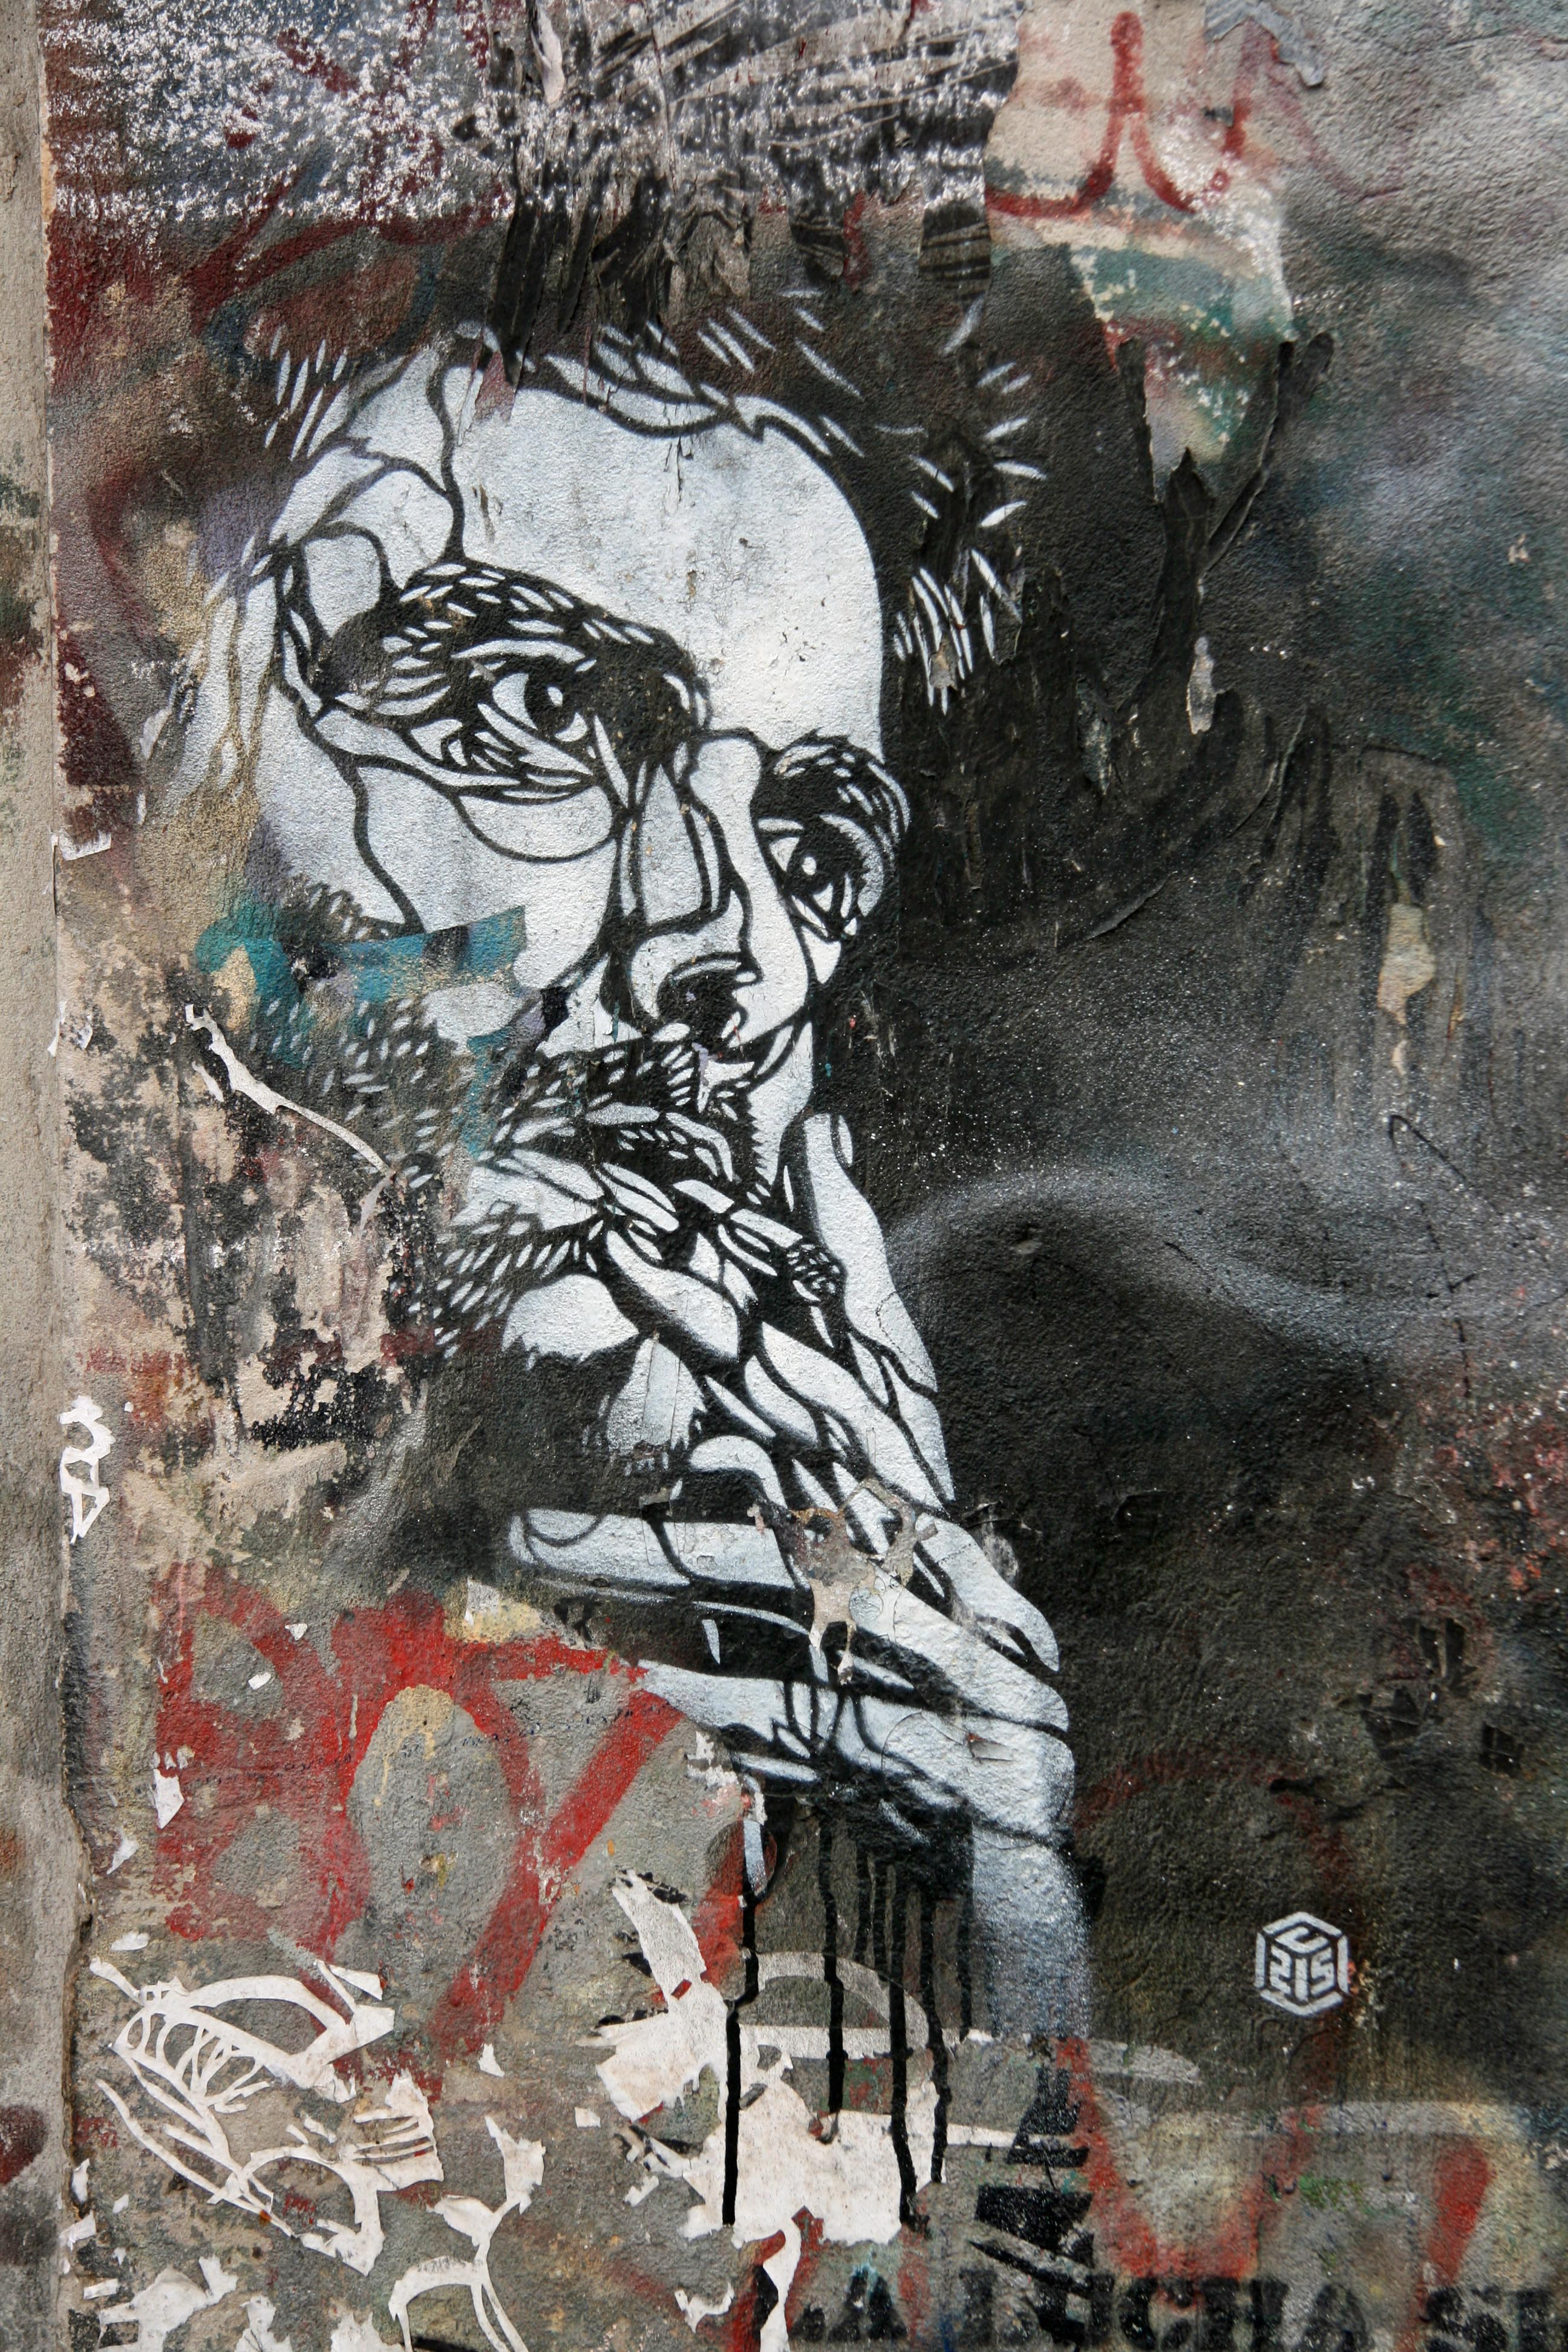 Smoker: Street Art by C215 in Berlin